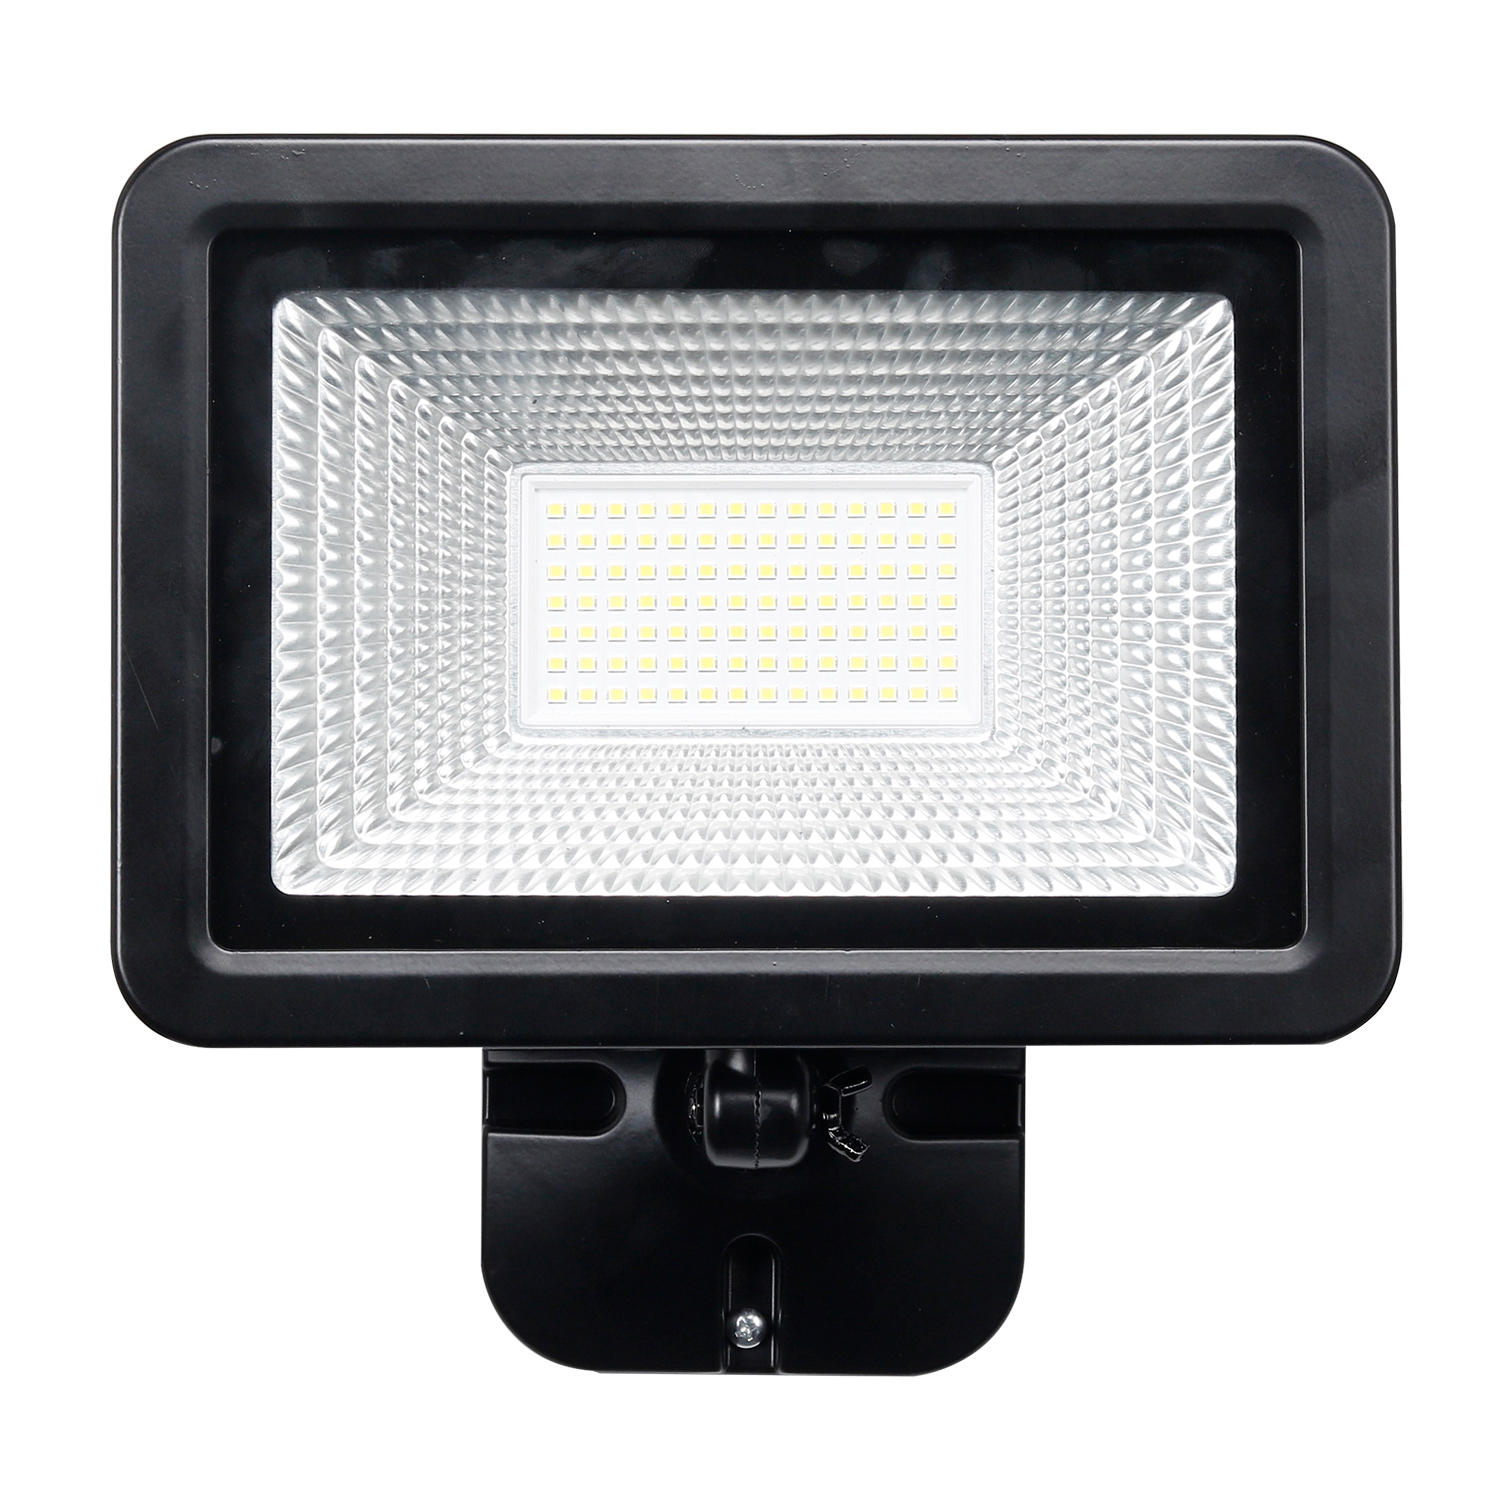 Honeywell Outdoor LED Flood Light 5000 Lumen With Knuckle Mount